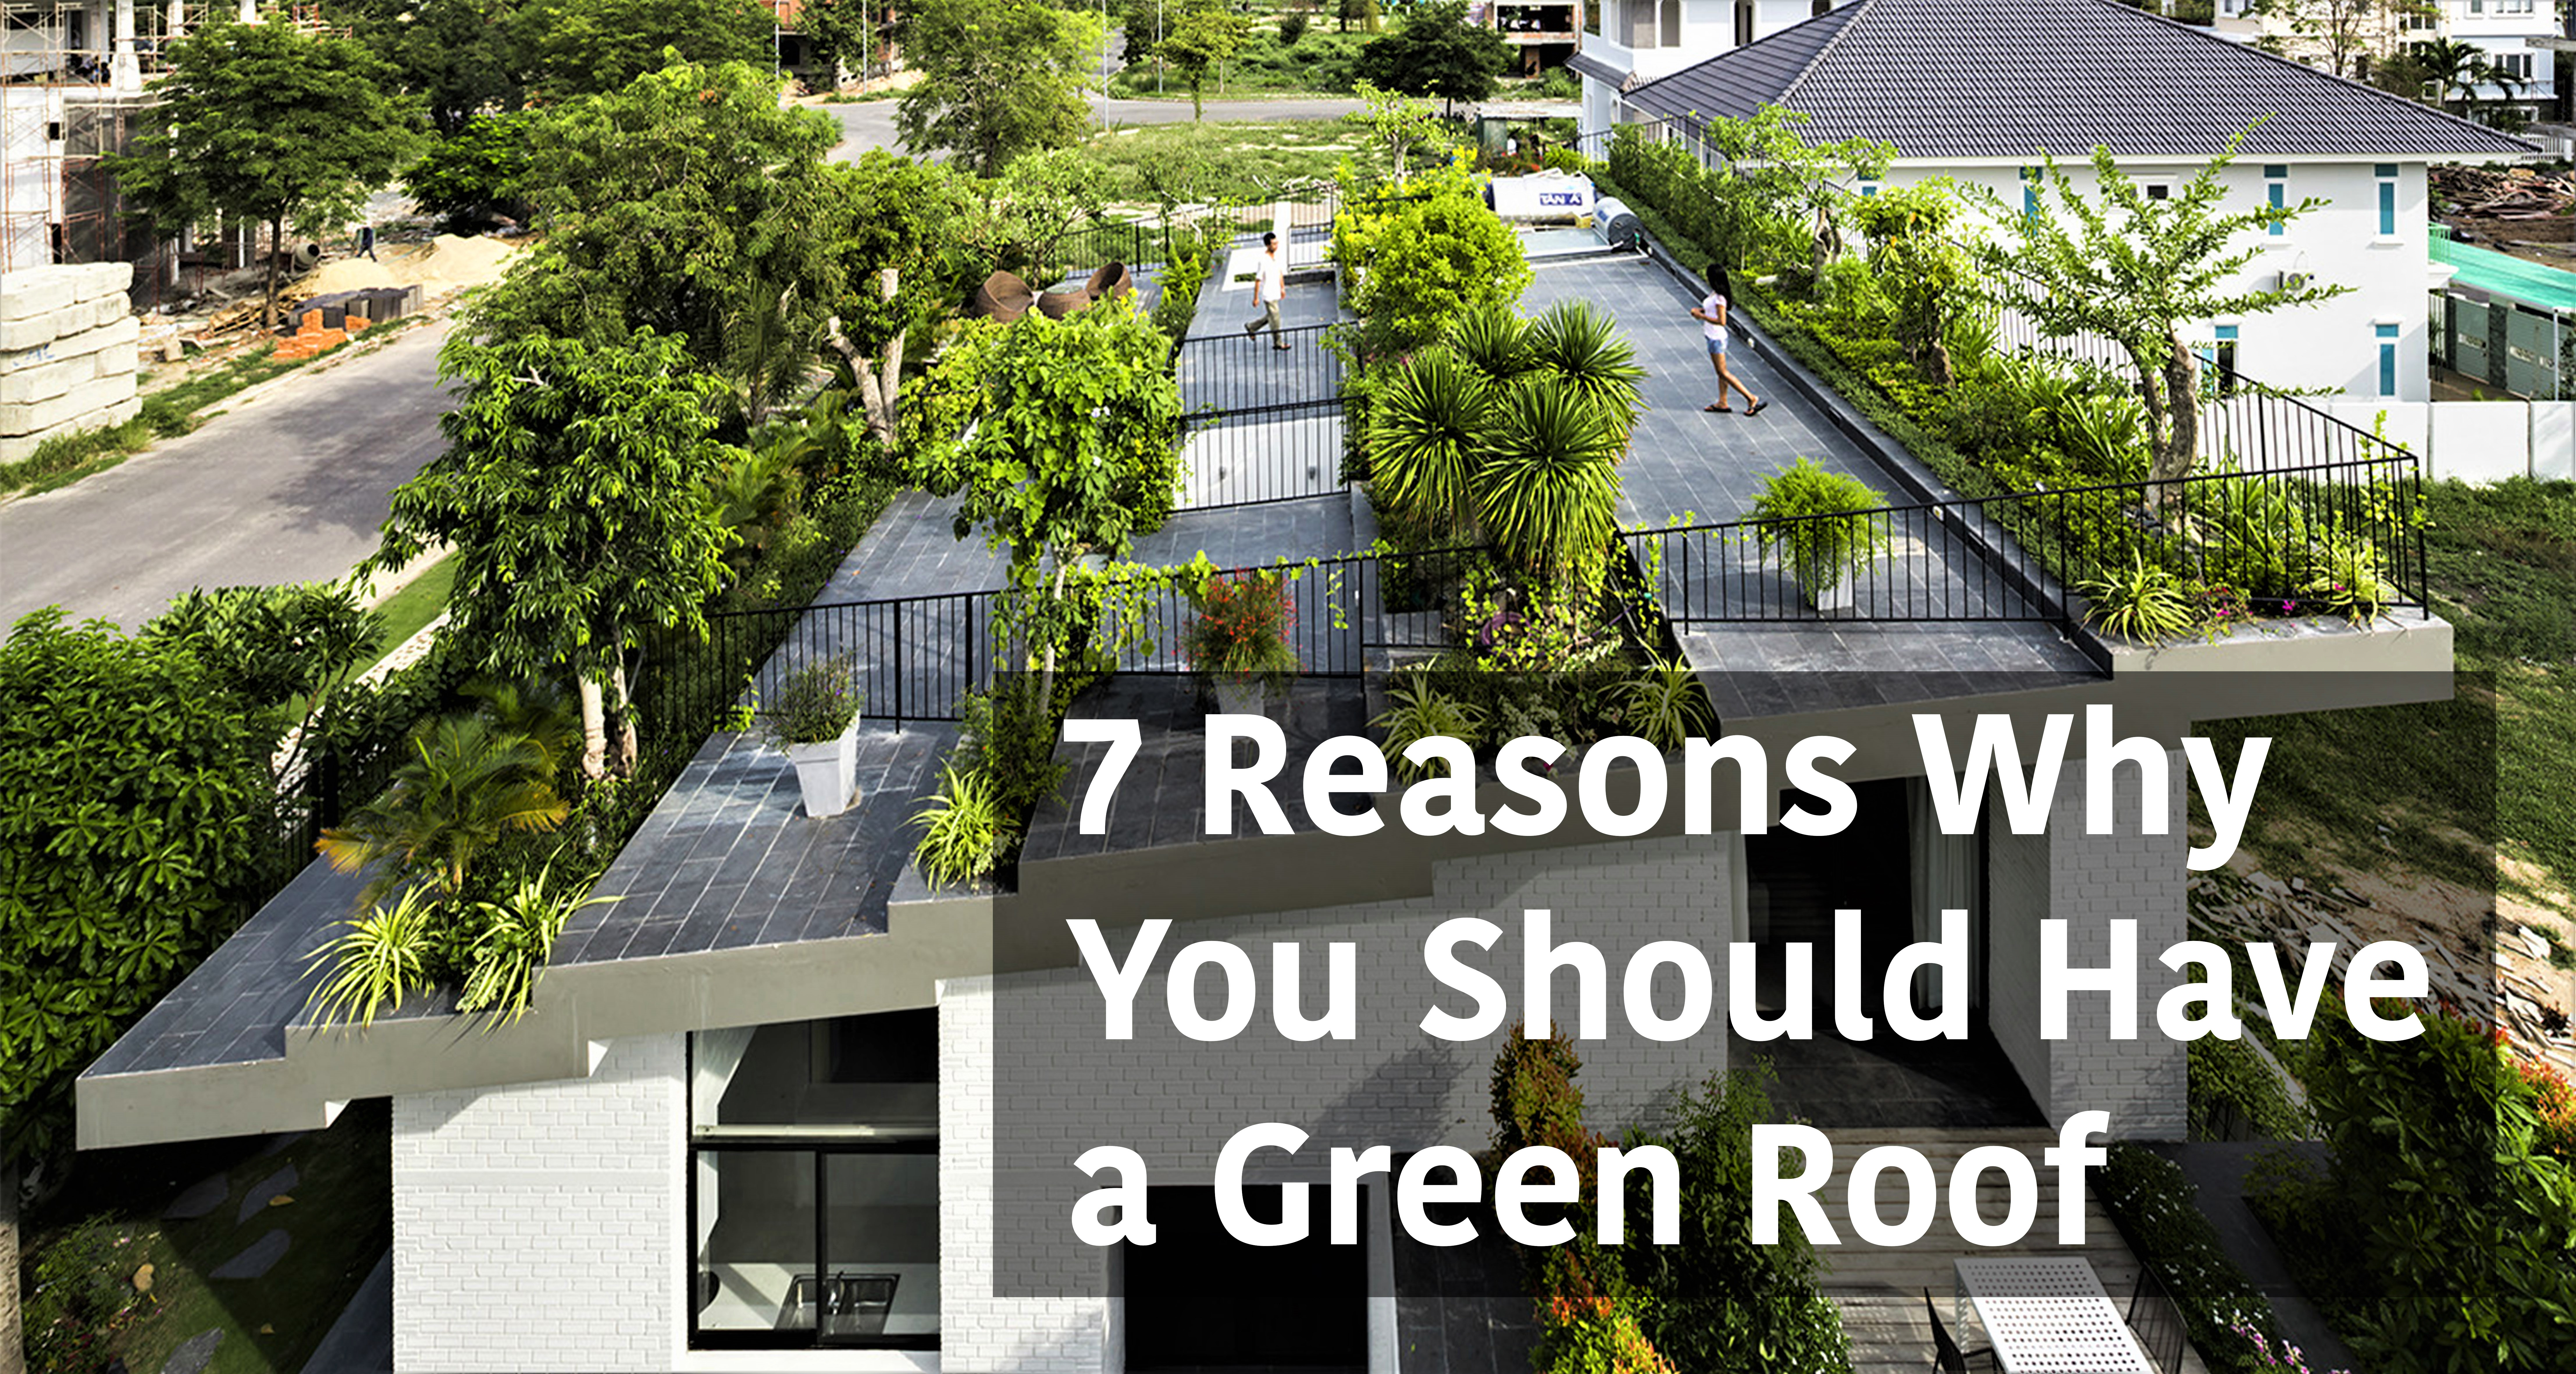 7 Reasons Why You Should Have a Green Roof - Arch2O.com